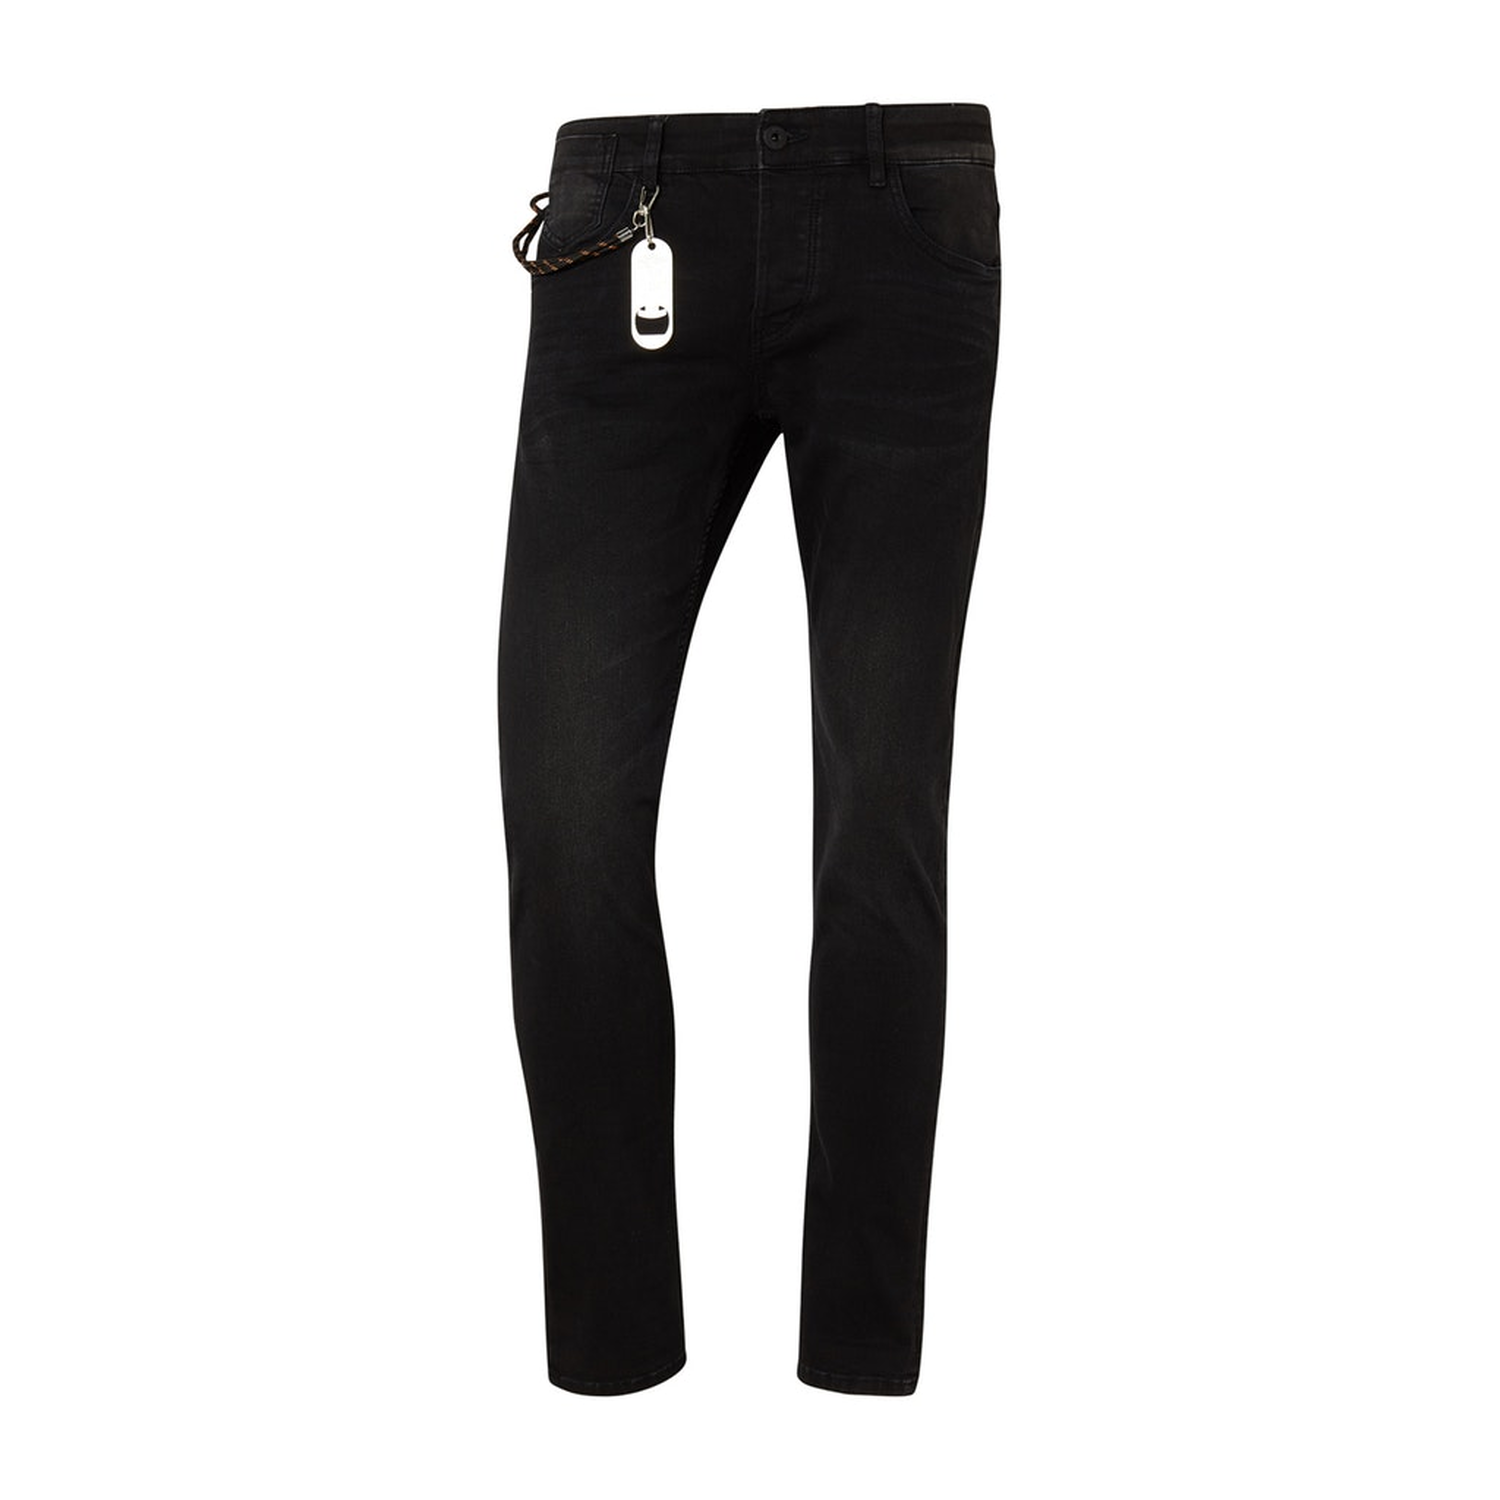 TOM TAILOR Troy Slim Jeans black used